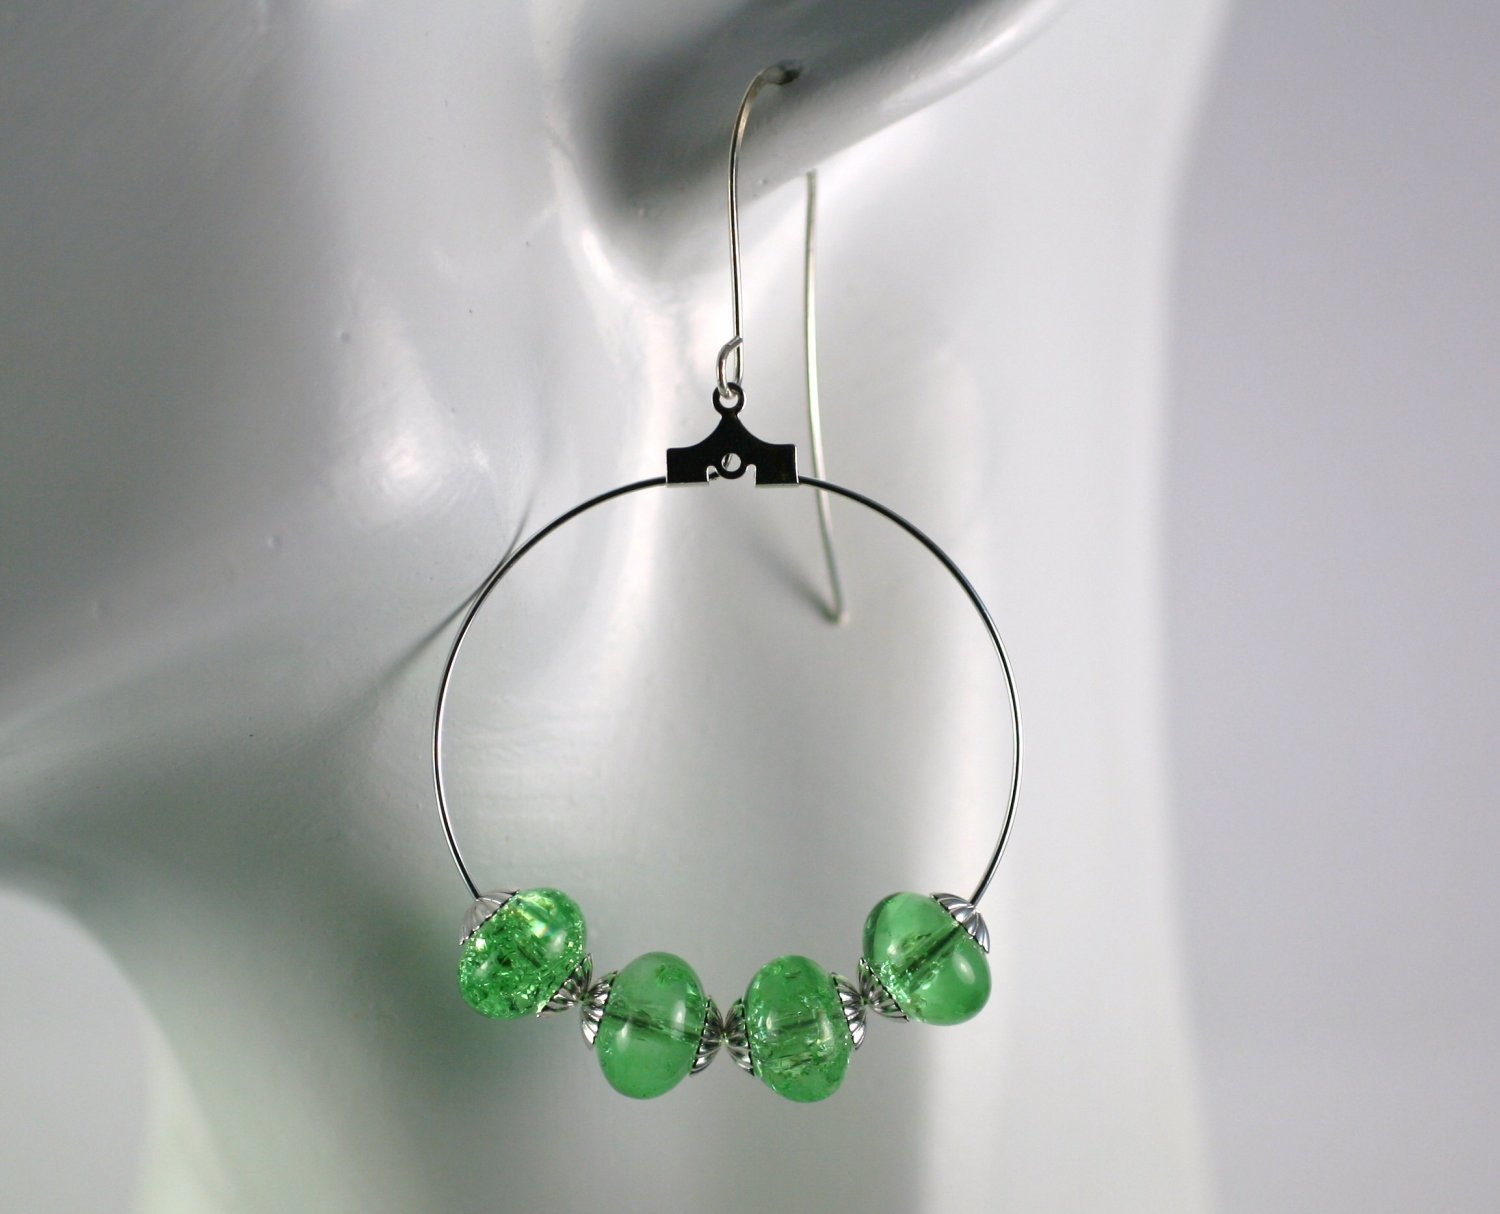 Silver Hoop Earrings with Green Crackled Glass Beads 1.5 in.  Handcrafted Jewelry